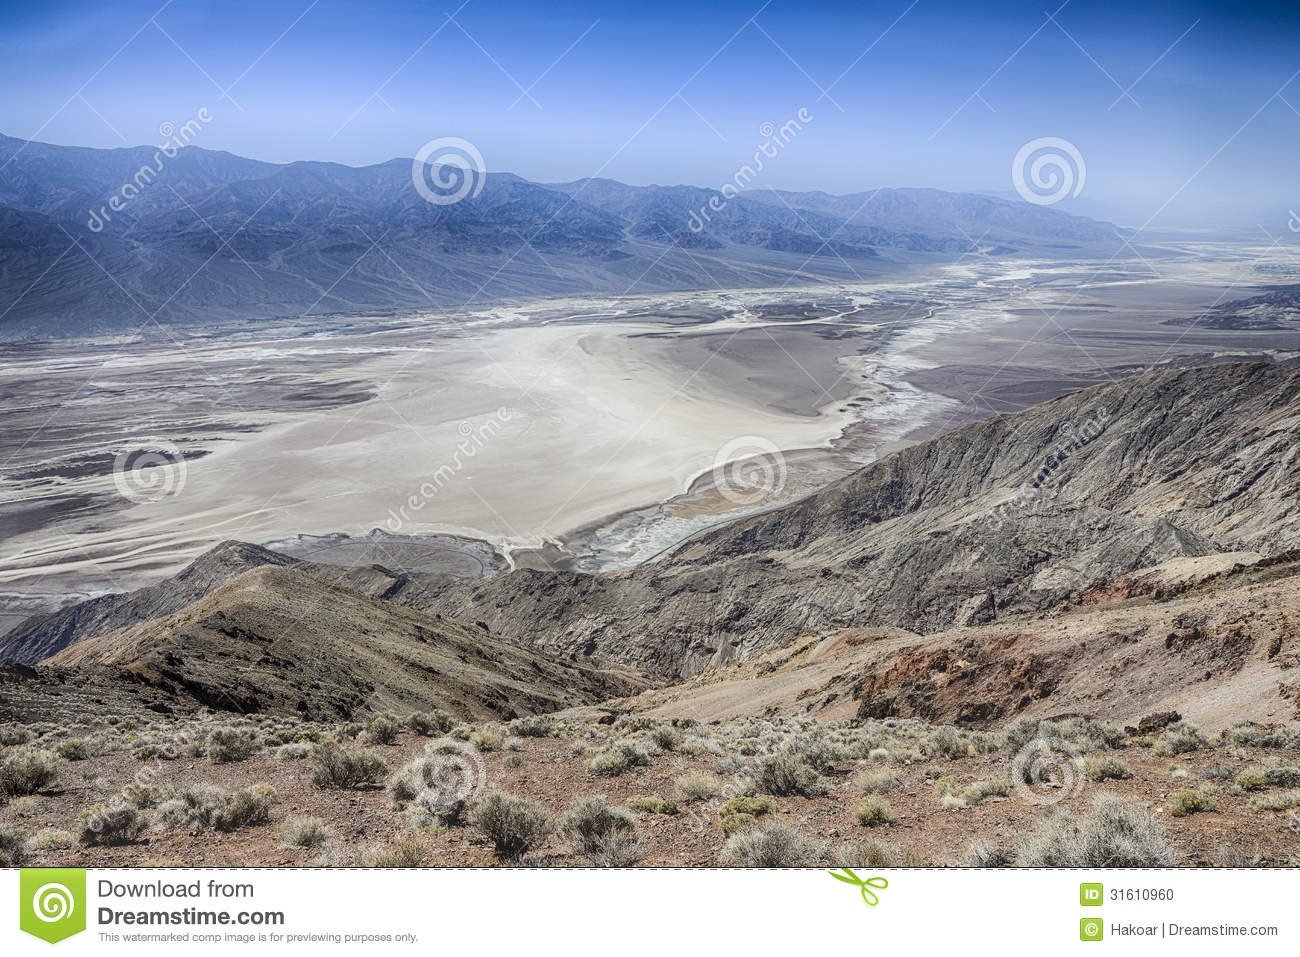 california map vector with Stock Photo Badwater Basin Death Valley Ca Top Usa Image31610960 on Spilt Ink Clipart together with Antique Oval Frame Clipart besides Location Clipart Vector as well Stock Image Hospital Logo Image15629991 together with Stock Photo Sick Female Having Ear Pain Touching Her Painful Head Tinnitus Closeup Up Side Profile Isolated Blue Background Image56024262.